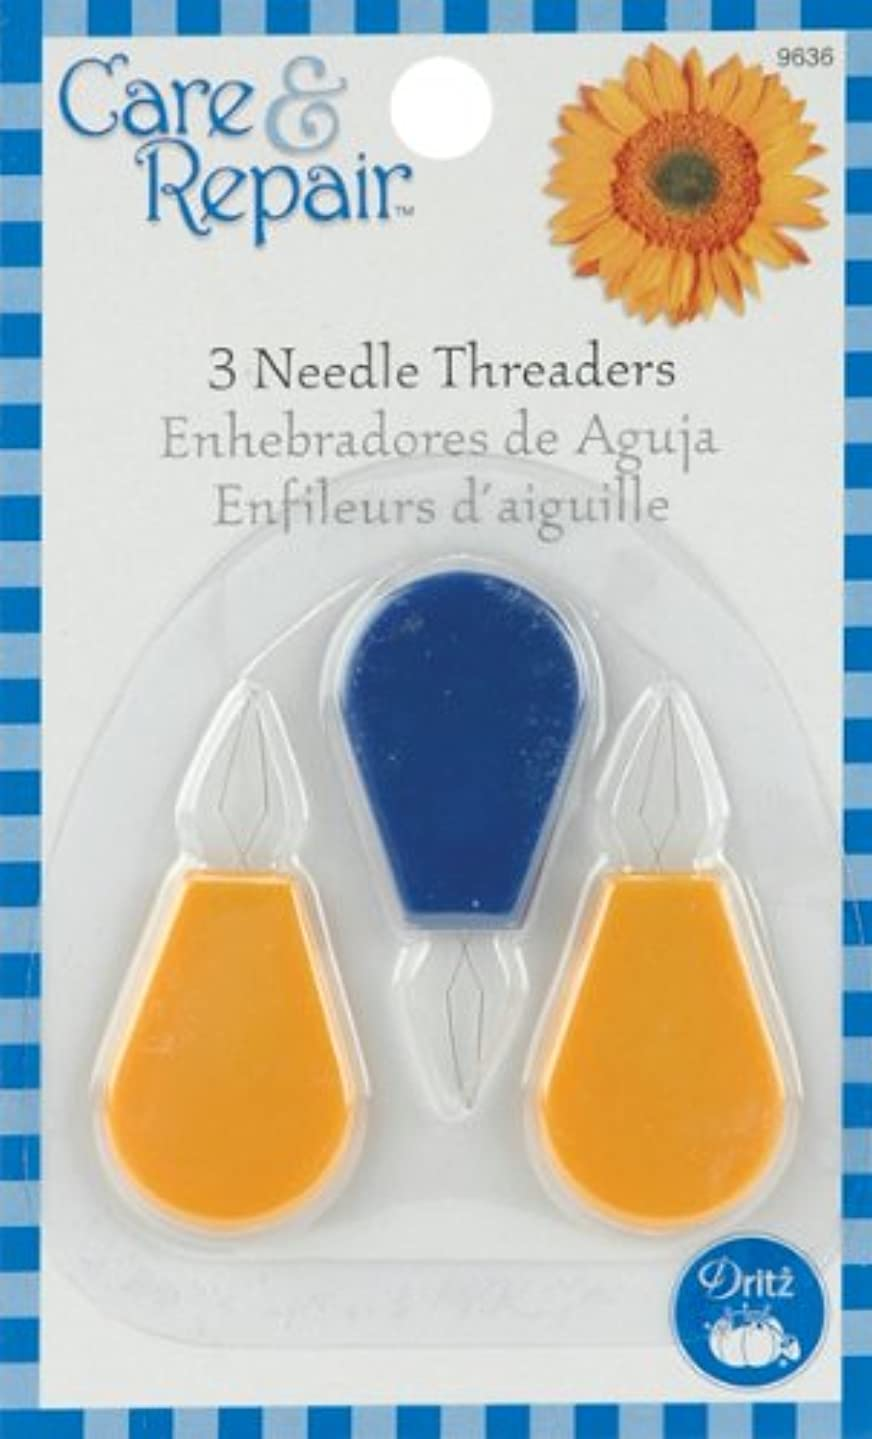 Dritz 9636D Plastic Needle Threaders, 3-Pack, Blue/Yellow